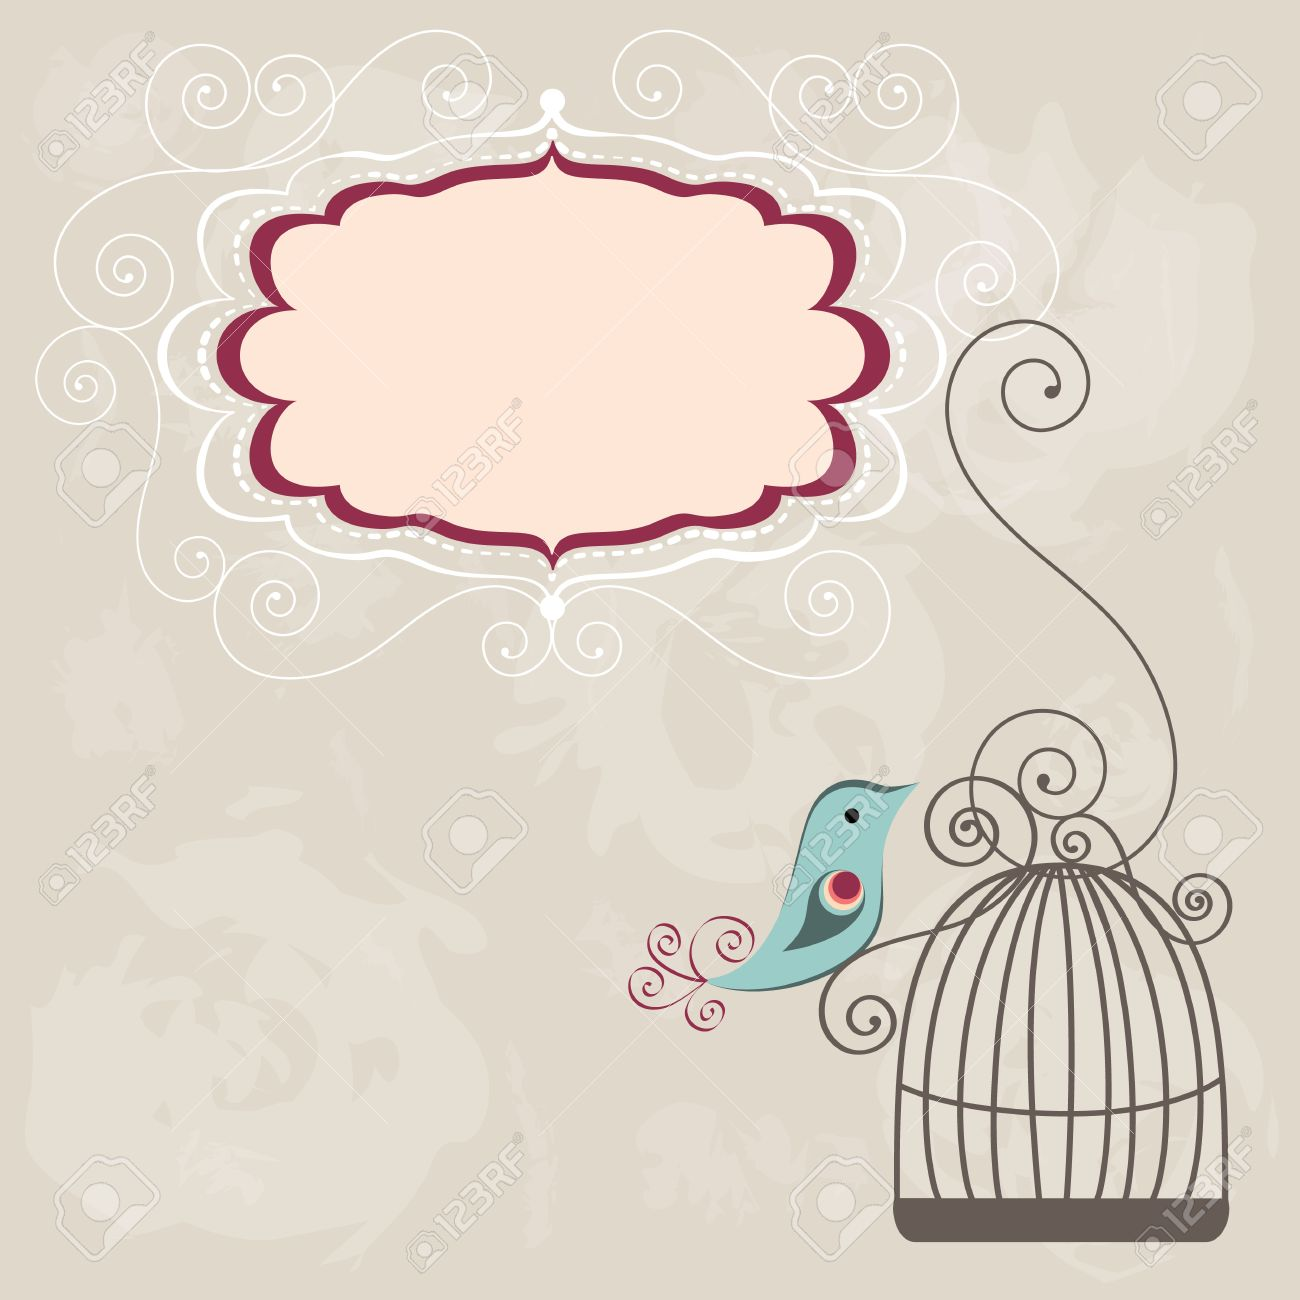 Beautiful background with frame and birdcage - 18812745